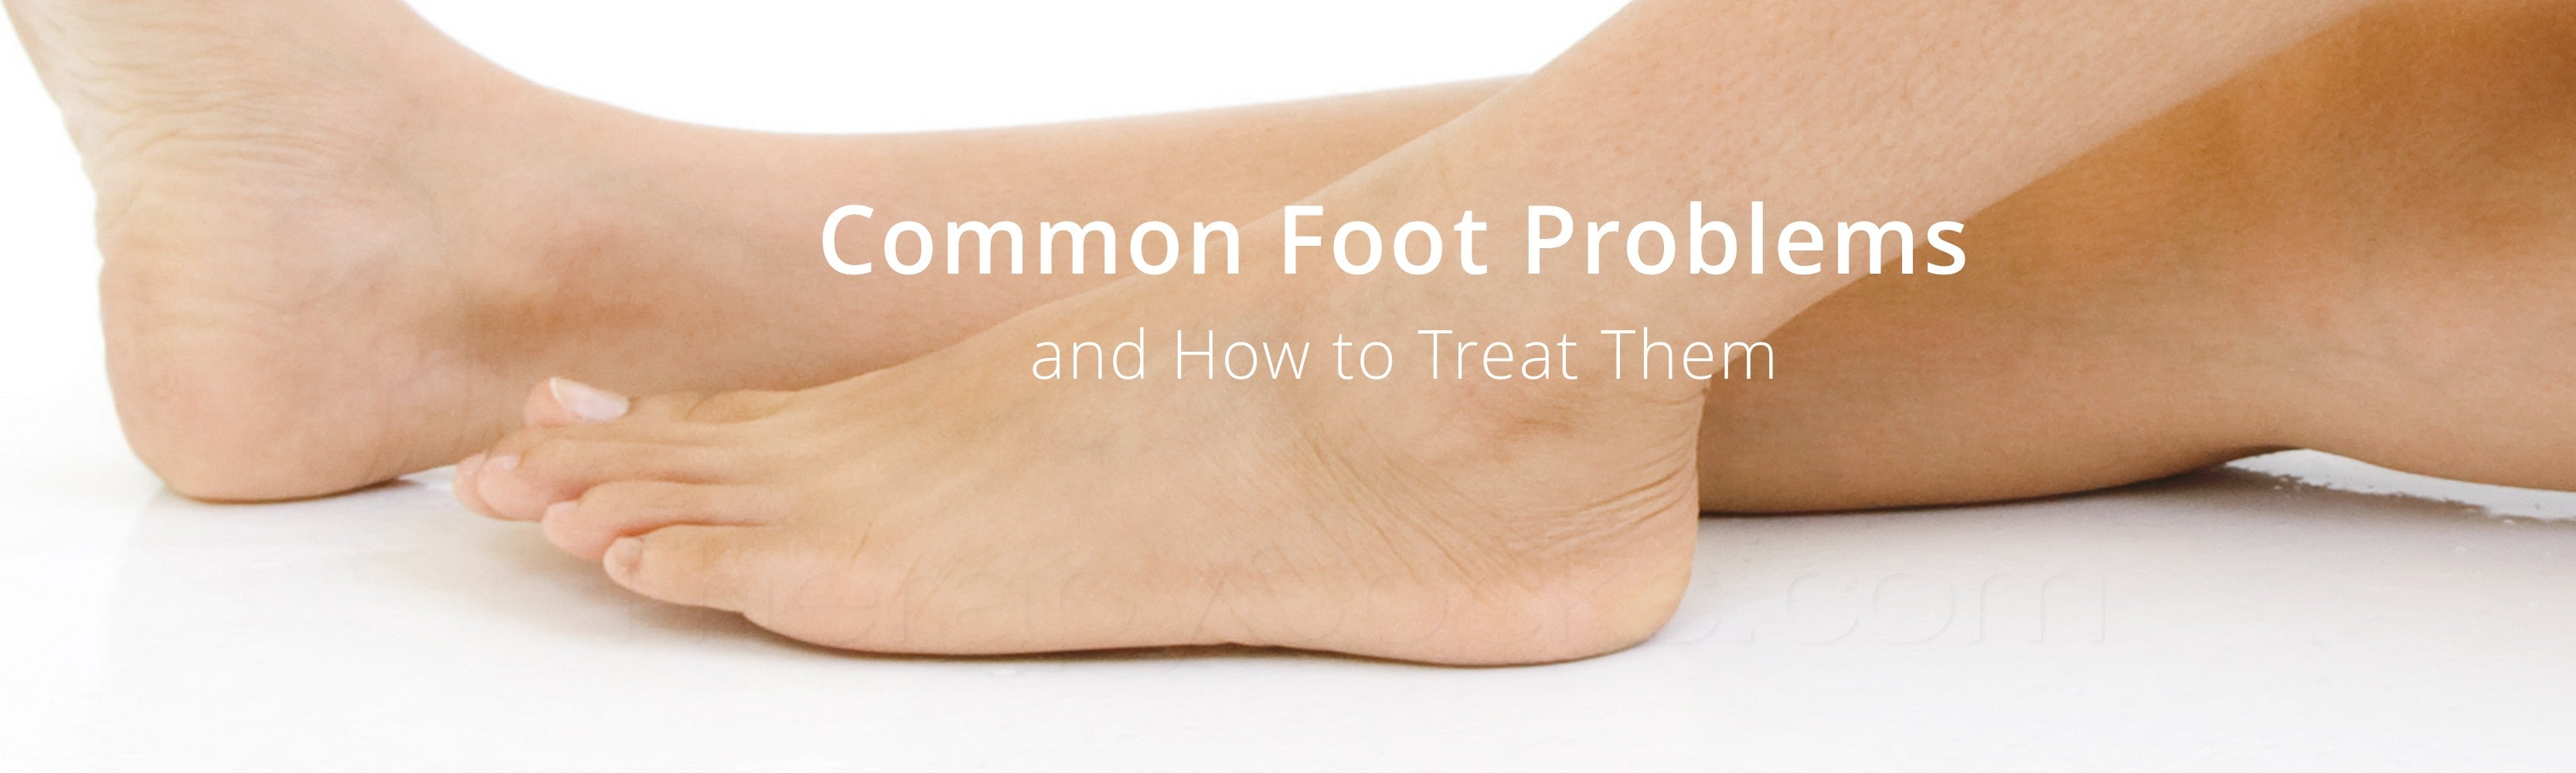 List of Common Foot Problems